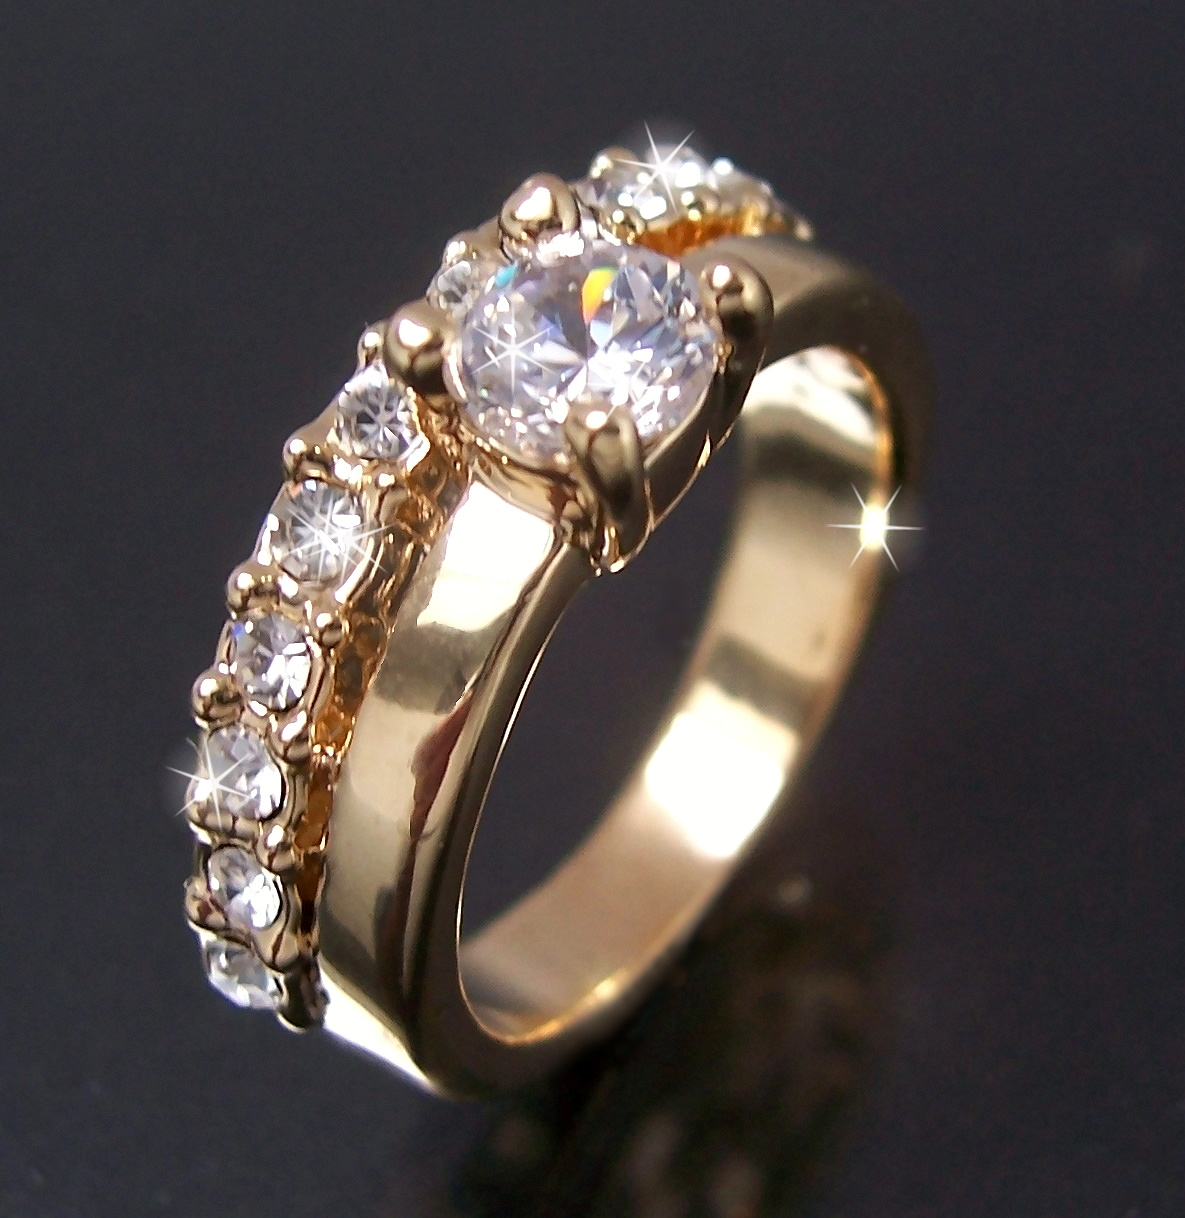 R53 Goldring GOLD PL RING RINGE STRASS 18mm SCHMUCK